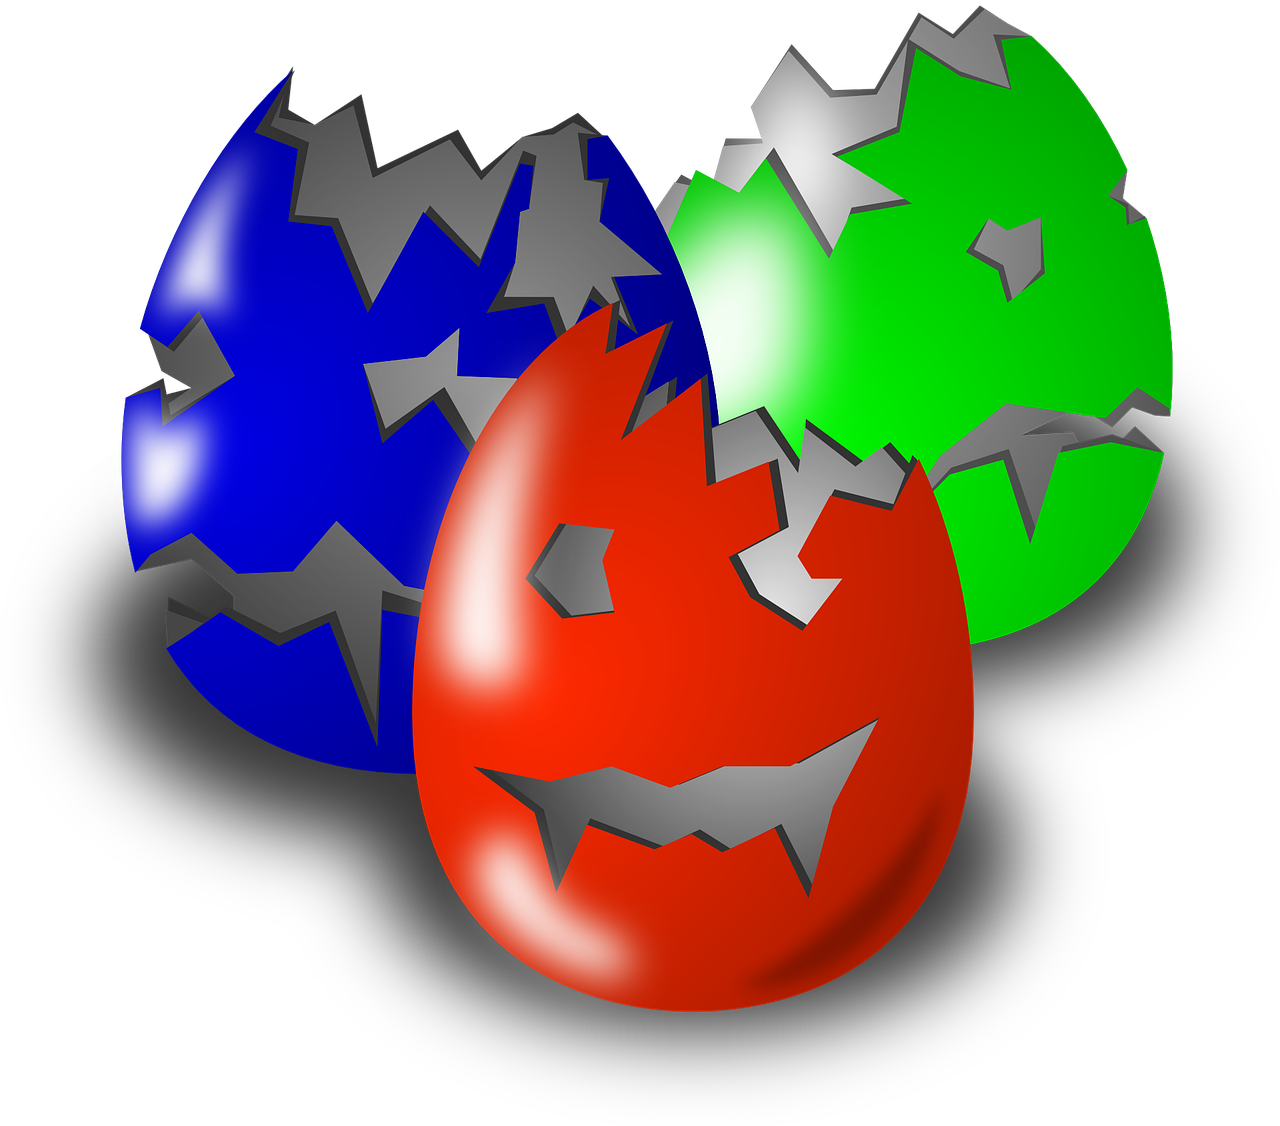 eggs,easter,carved,scary,red,green,blue,free vector graphics,free pictures, free photos, free images, royalty free, free illustrations, public domain